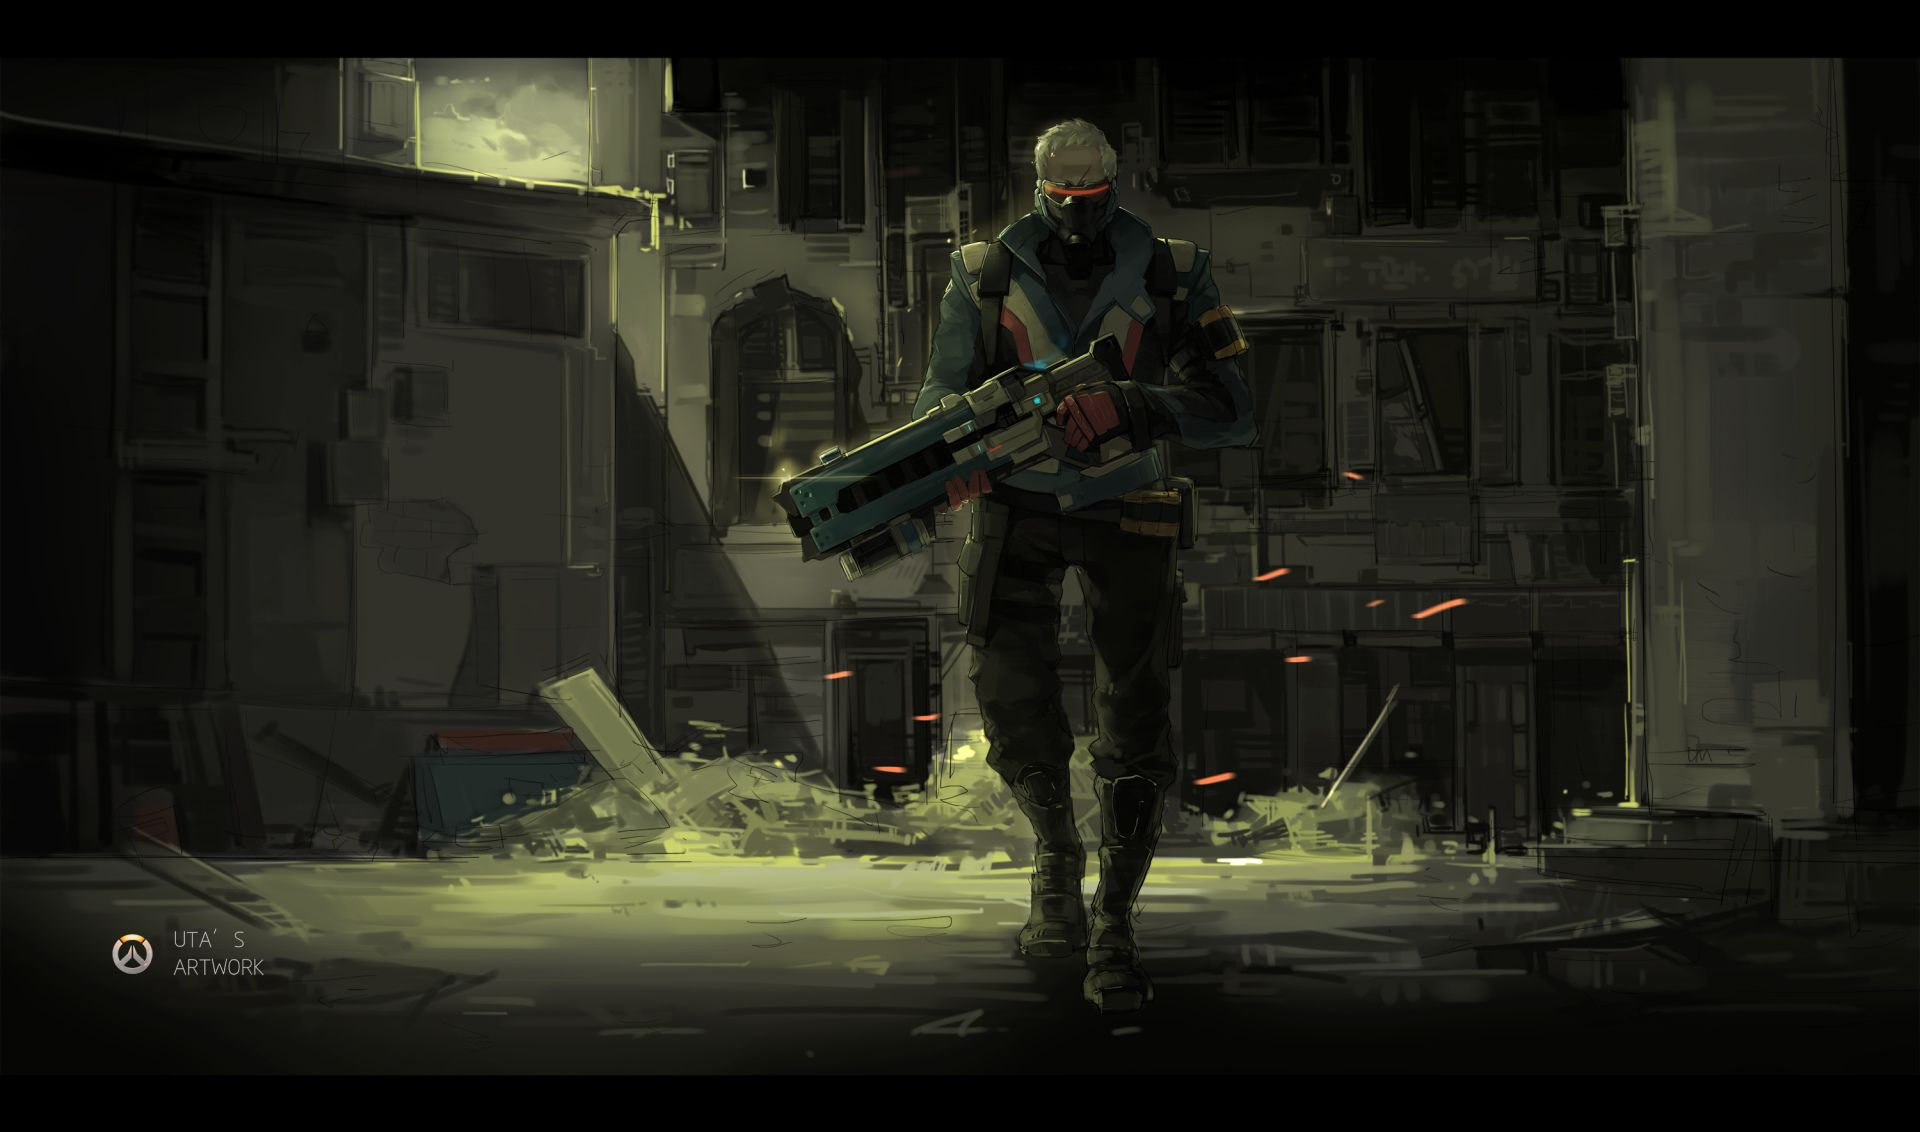 Soldier 76 Wallpapers - Top Free Soldier 76 Backgrounds